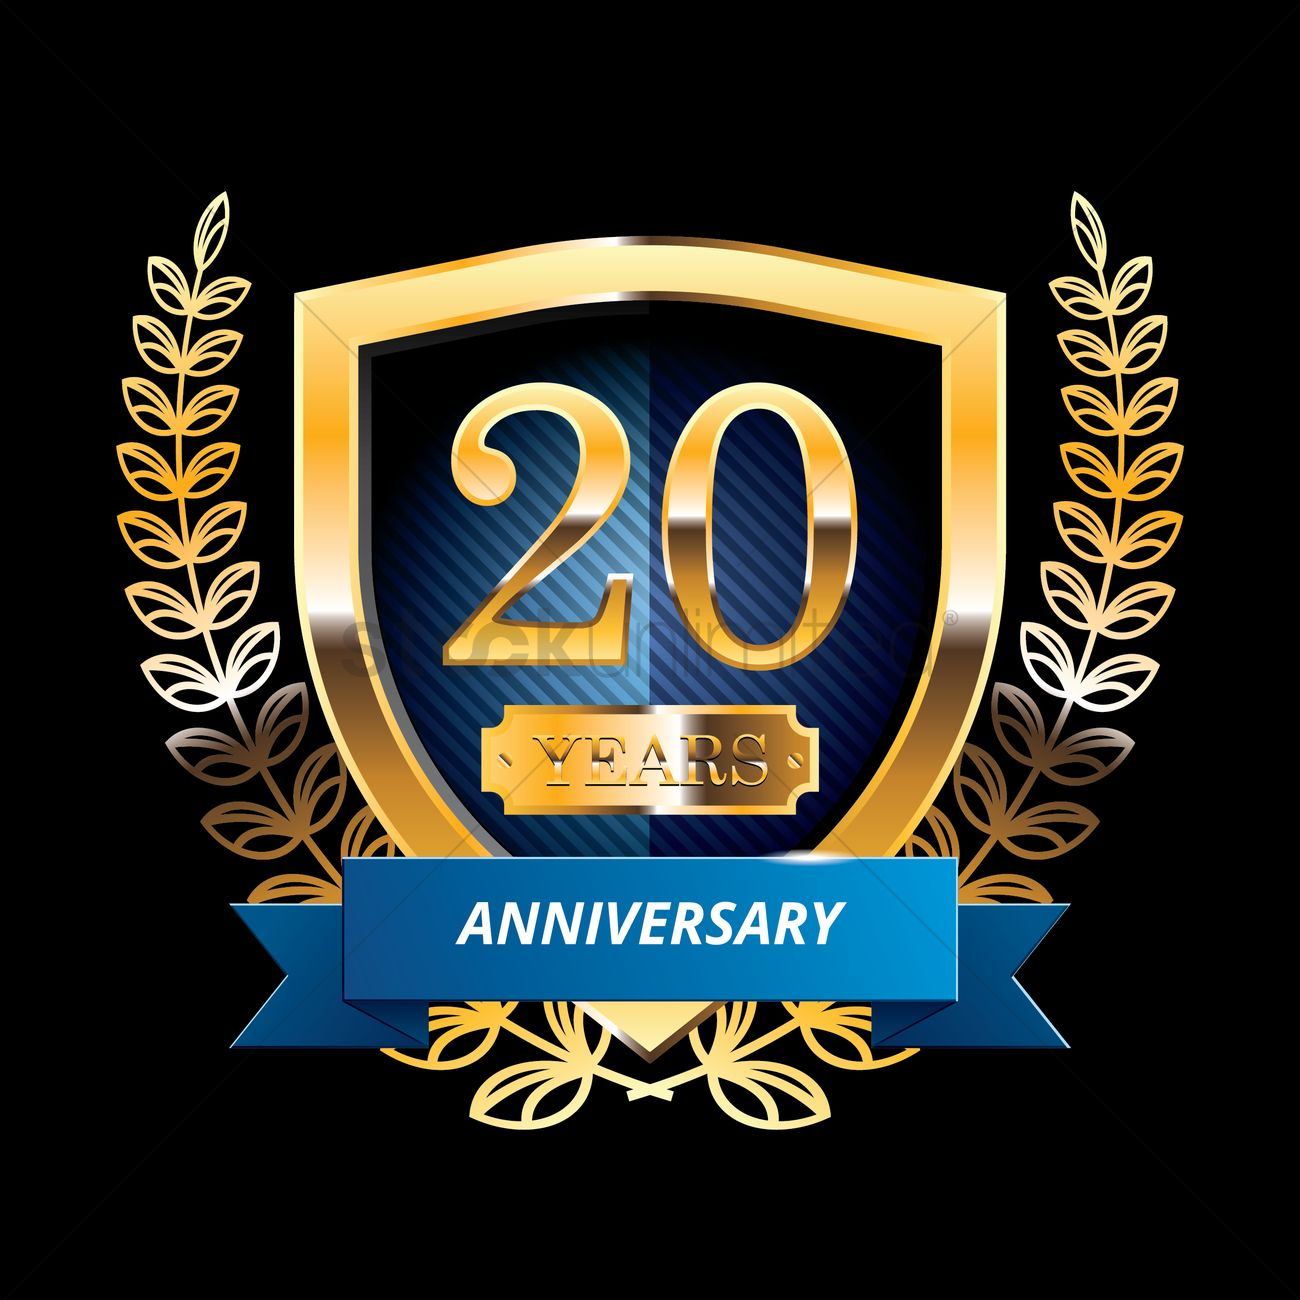 20 Years Anniversary Label With Ribbon Vector Image 1399810